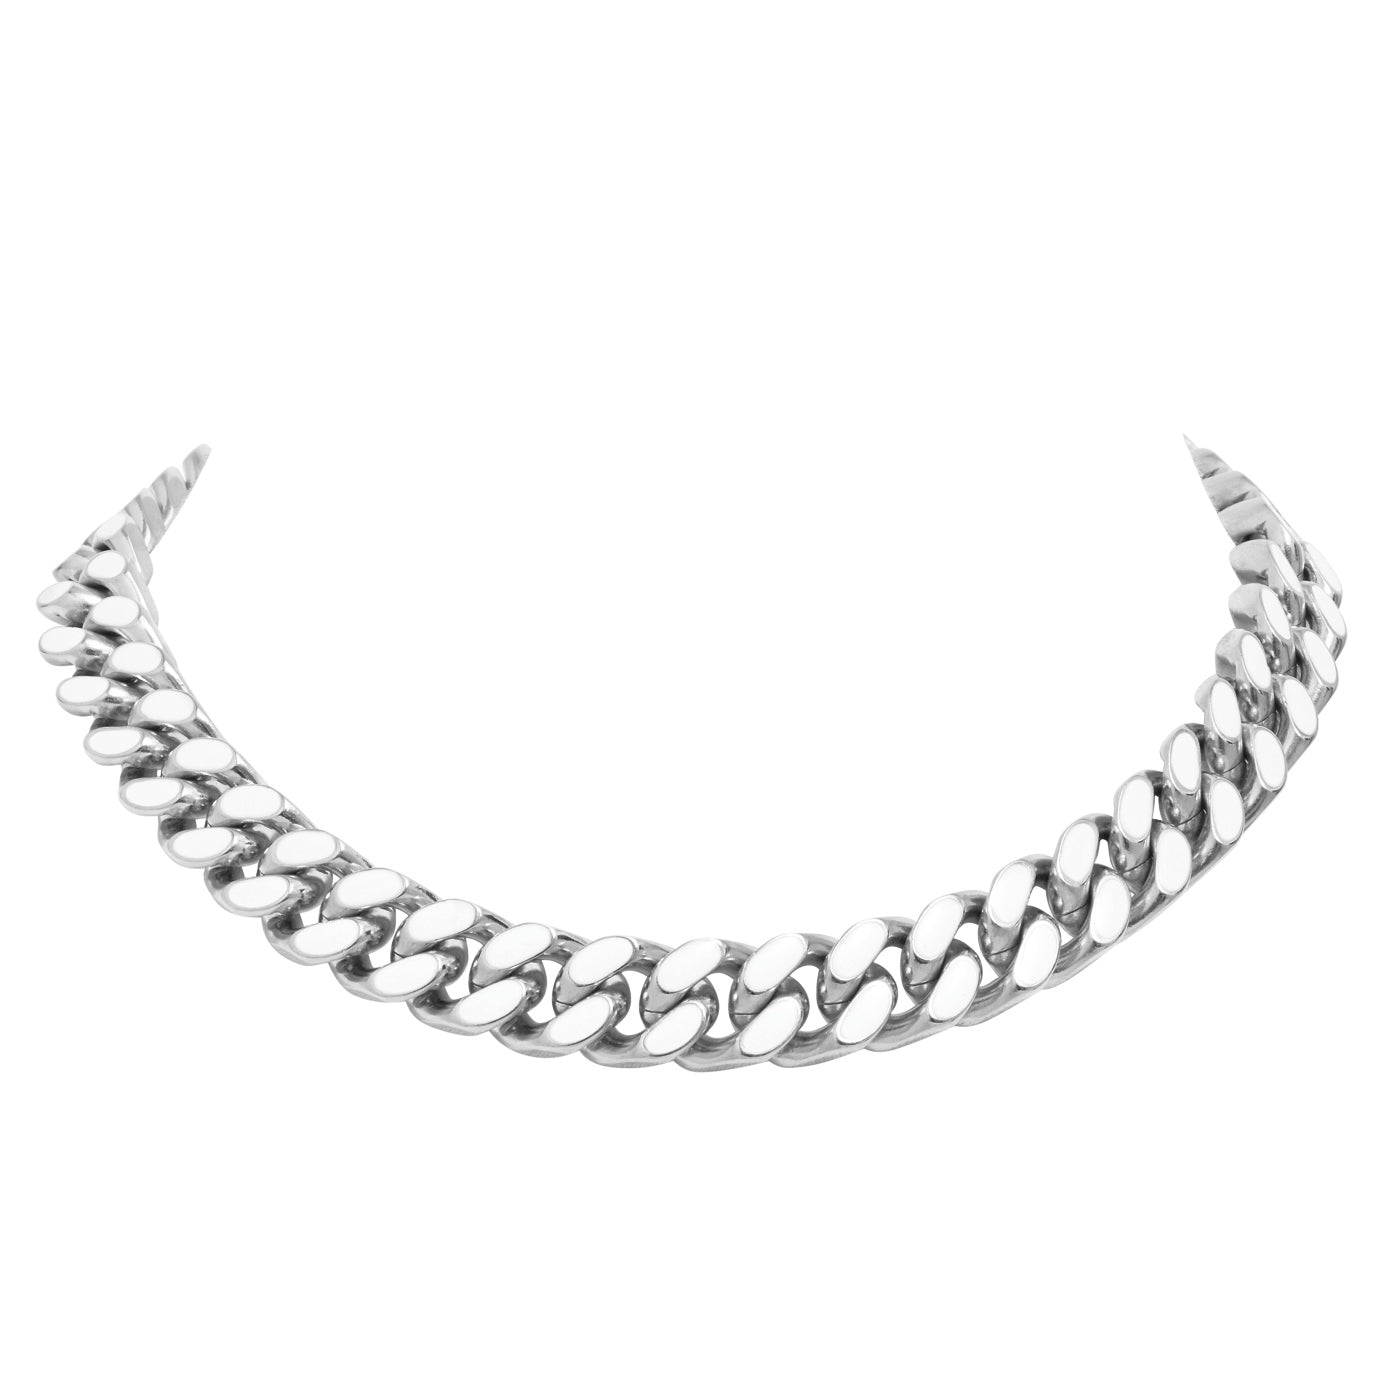 ARMURE ENAMEL CURB CHAIN COLLAR NECKLACE - SILVER/WHITE